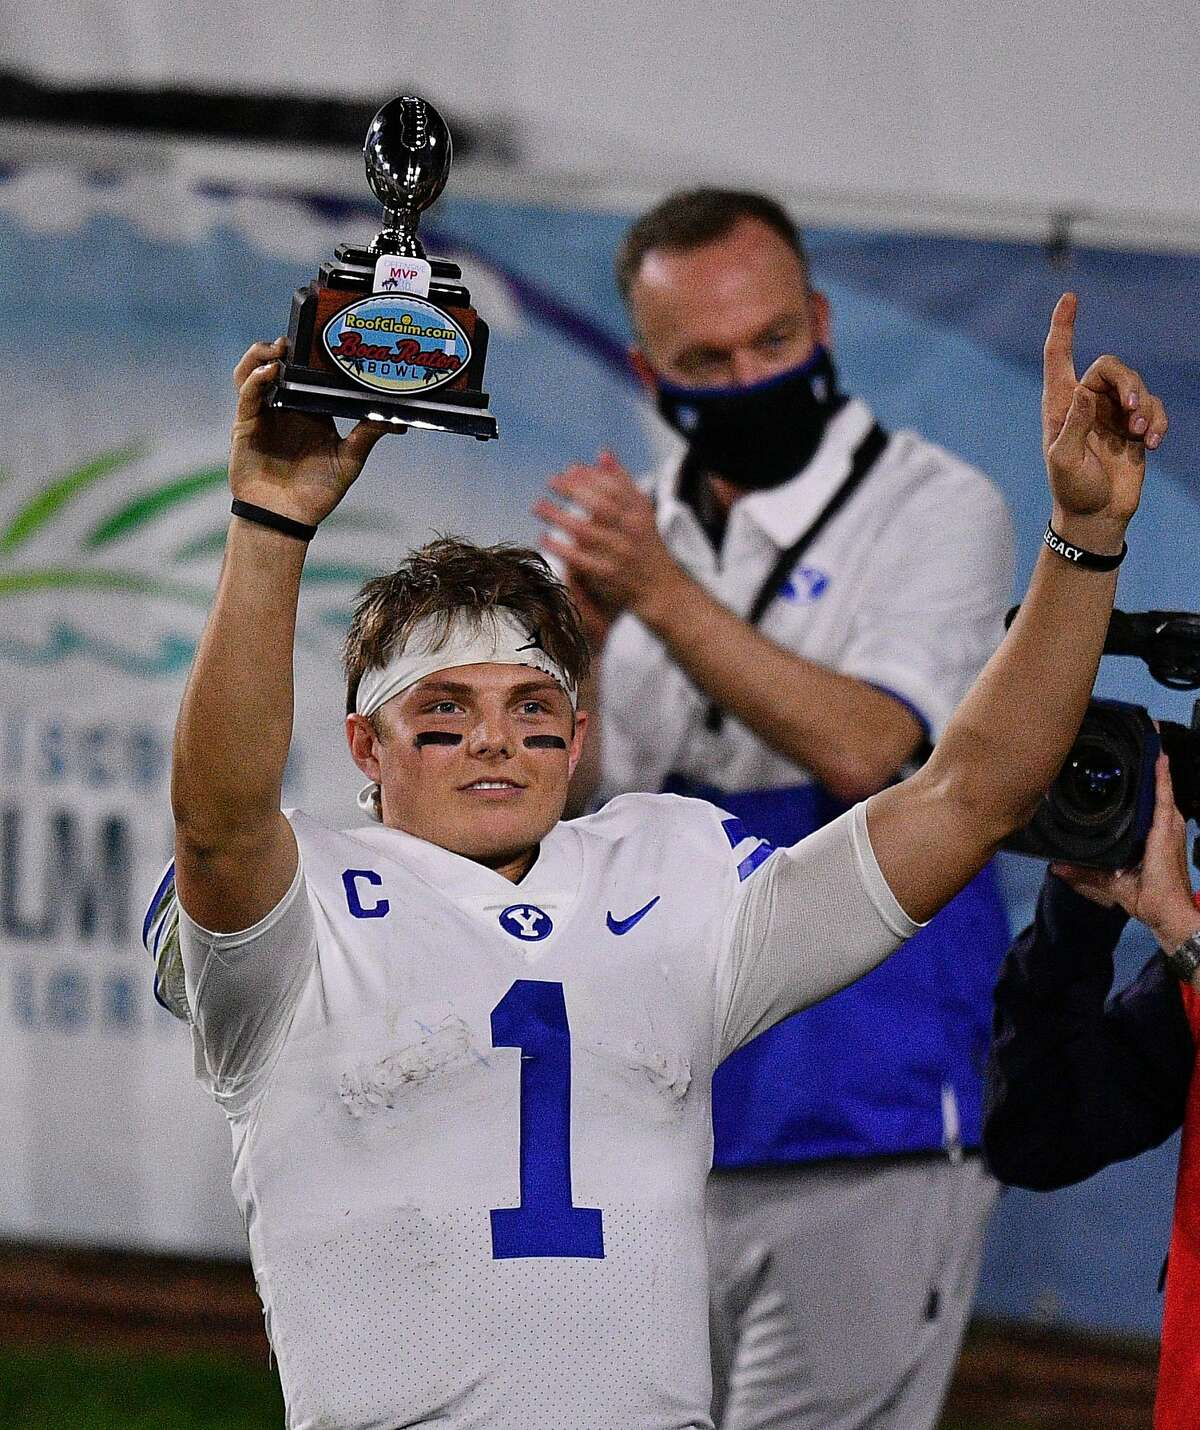 BOCA RATON, FLORIDA - DECEMBER 22: Zach Wilson #1 of the Brigham Young Cougars lifts the MVP Trophy after beating the Central Florida Knights 49-23 at FAU Stadium on December 22, 2020 in Boca Raton, Florida. (Photo by Mark Brown/Getty Images)